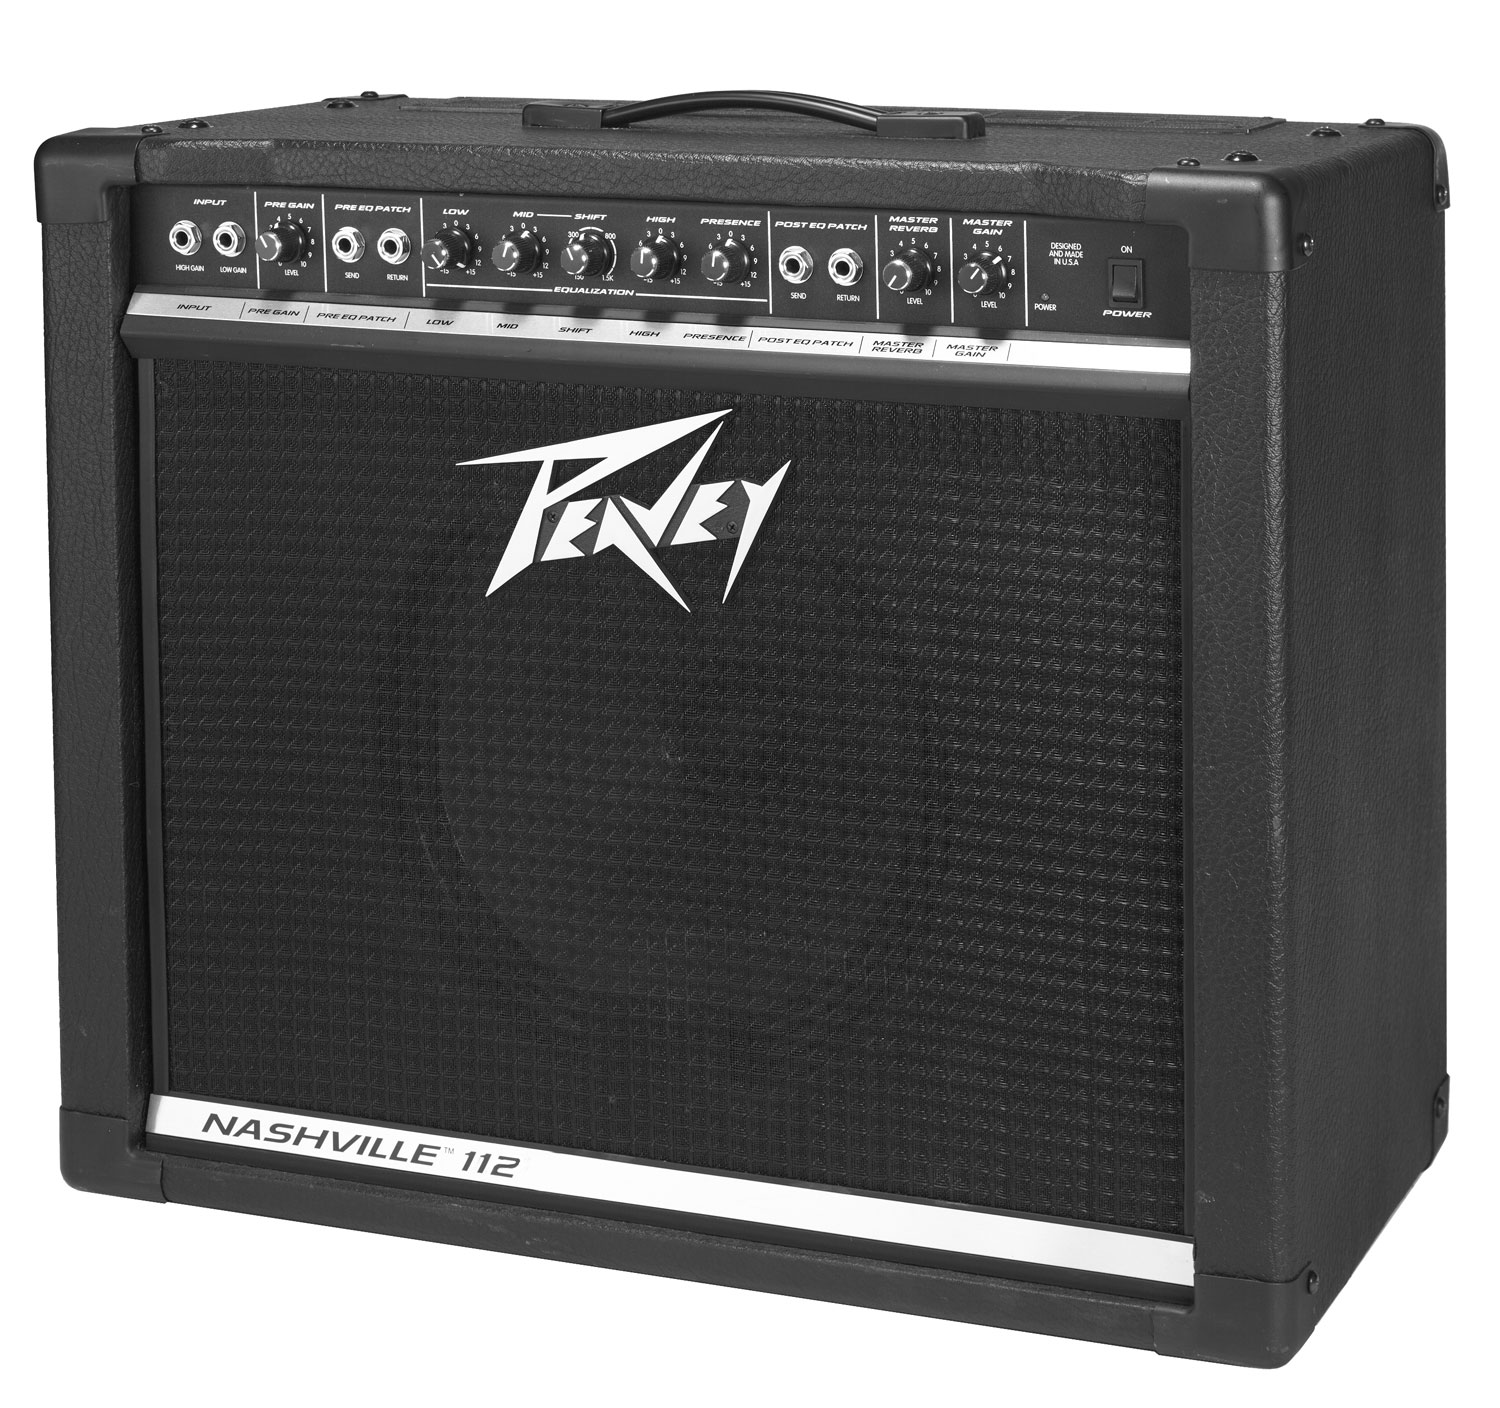 Peavey Nashville™ 112 Pedal Steel Guitar Amplifier